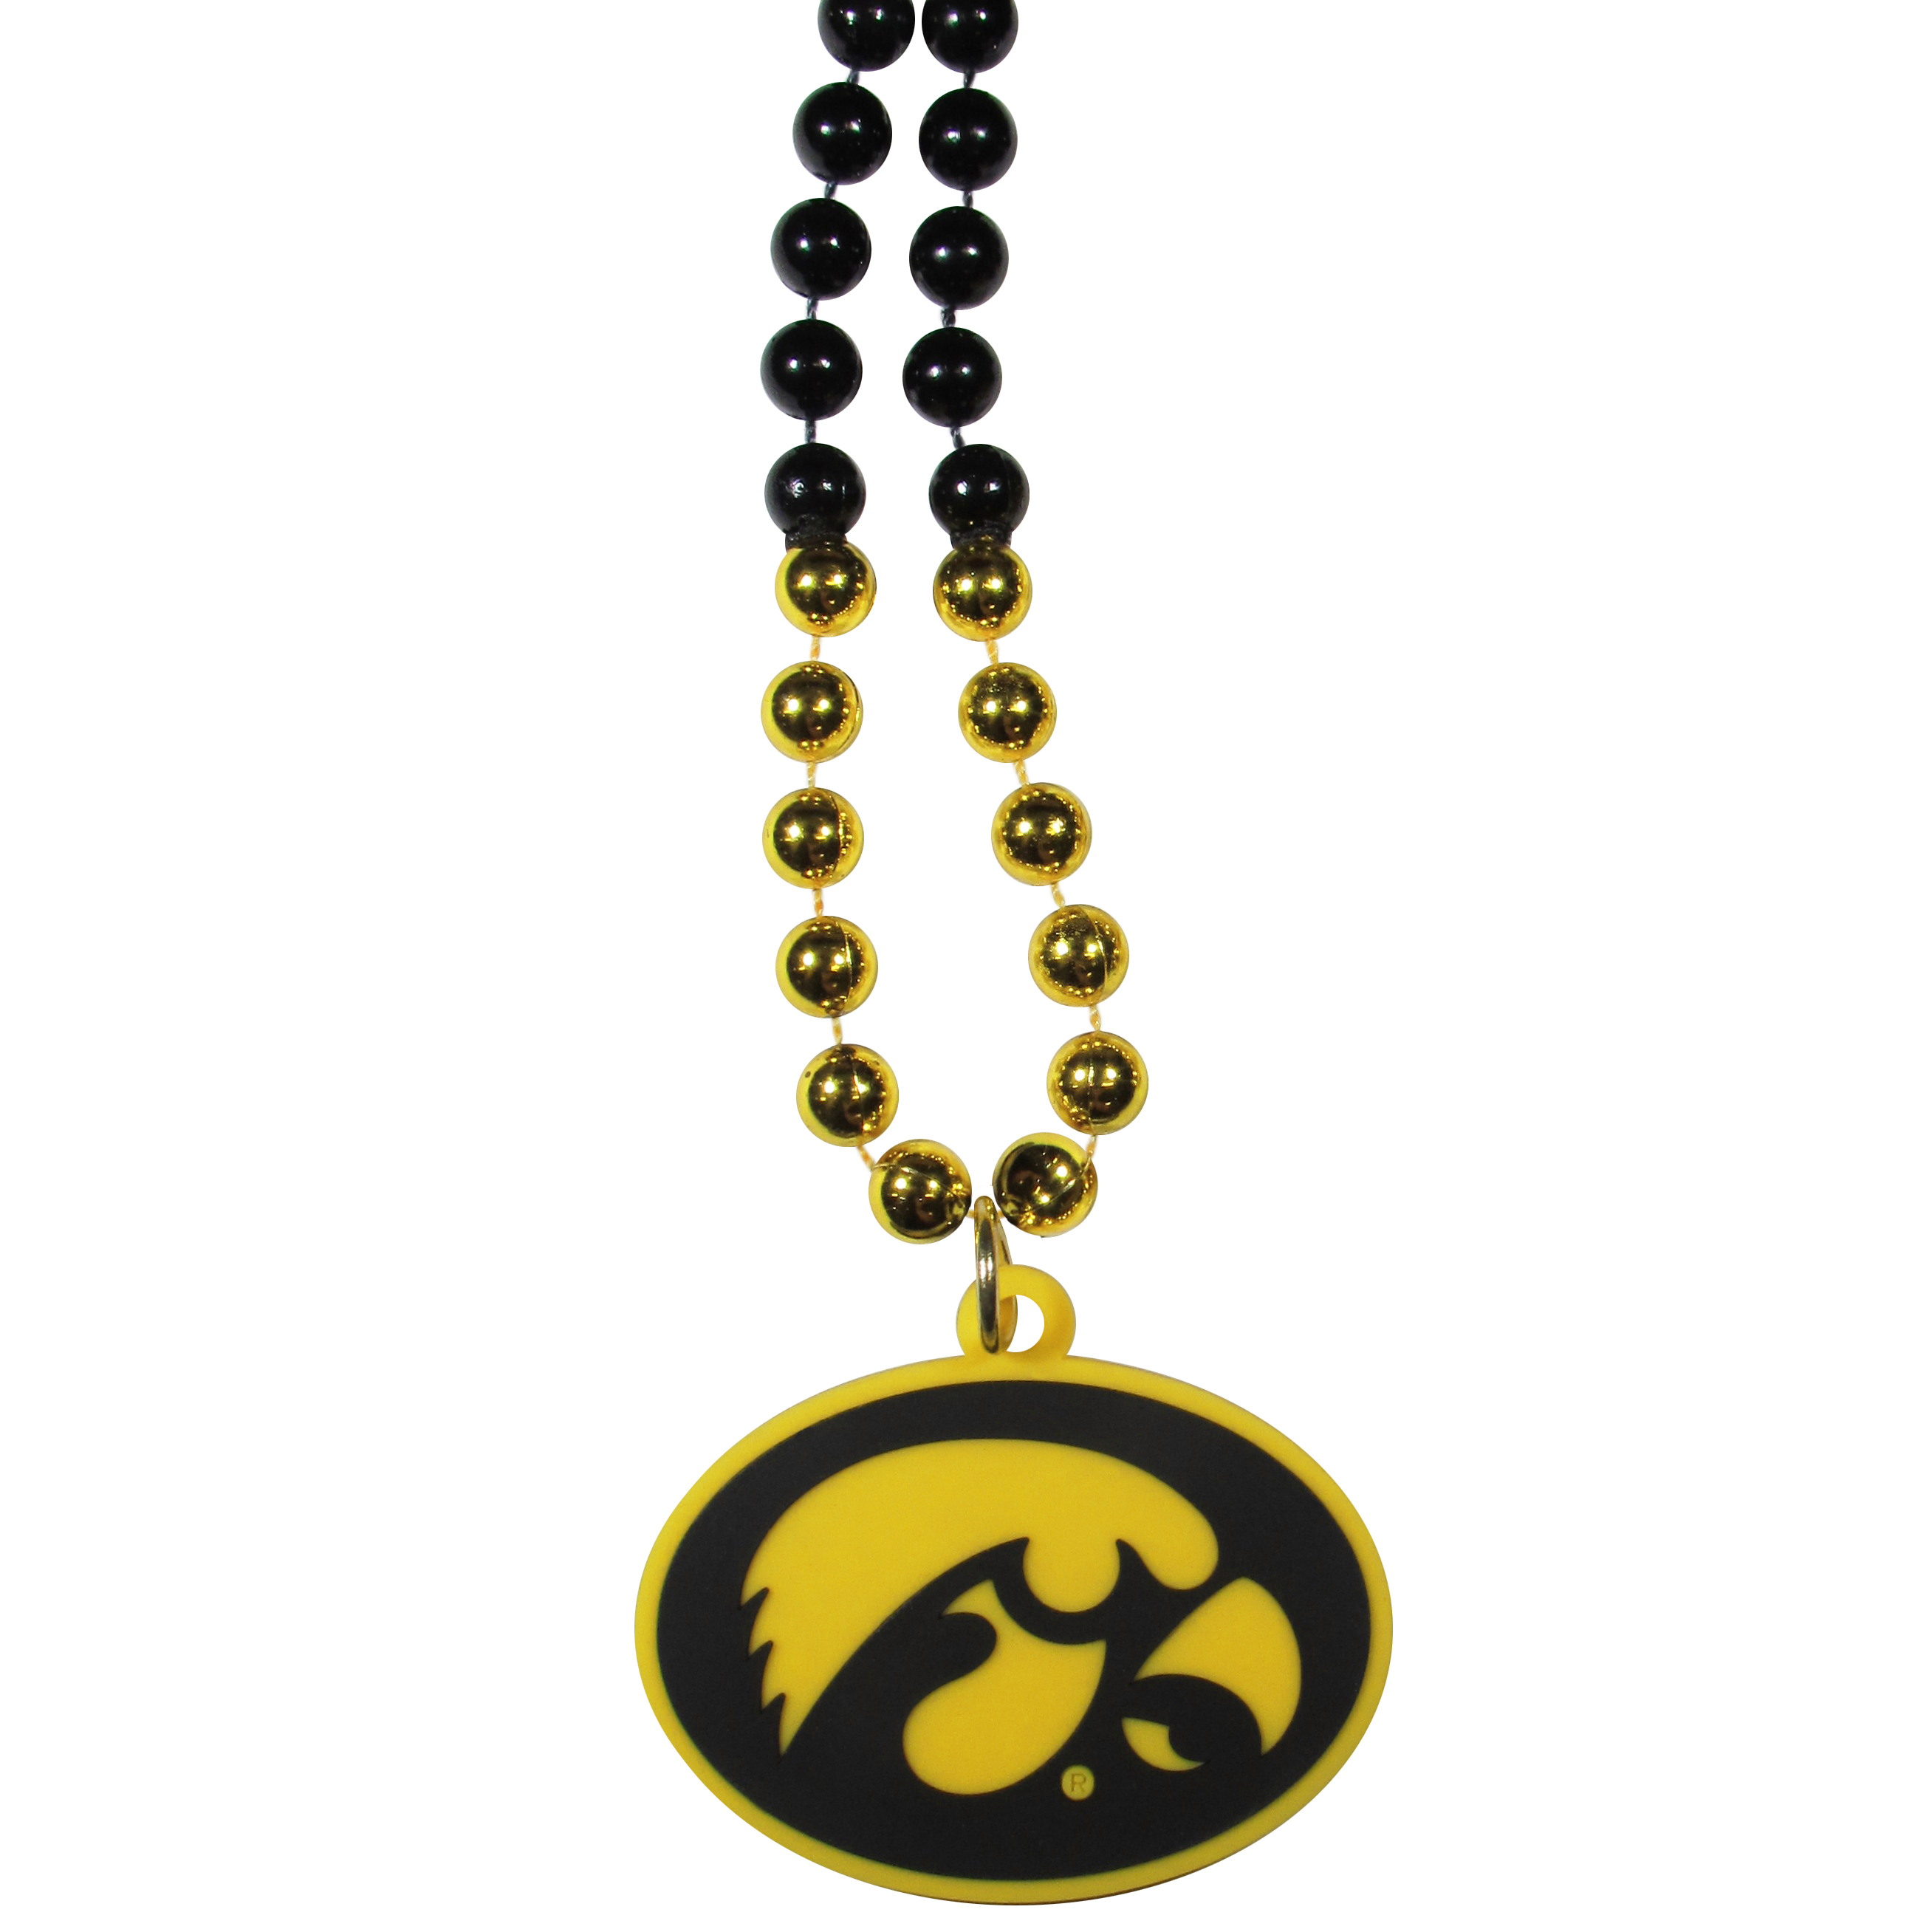 Iowa Hawkeyes Mardi Gras Necklace - Get the party started with this Mardi Gras inspired bead necklace. The flashy beads have a shiny finish and come in bright team colors strung together on a 36 inch string so you can make a big statement on game day! The beads come with an extra large flexible team logo that is a full 3 inches at its widest point. This trendy and bold necklace screams out your Iowa Hawkeyes pride and is a must have at game time!